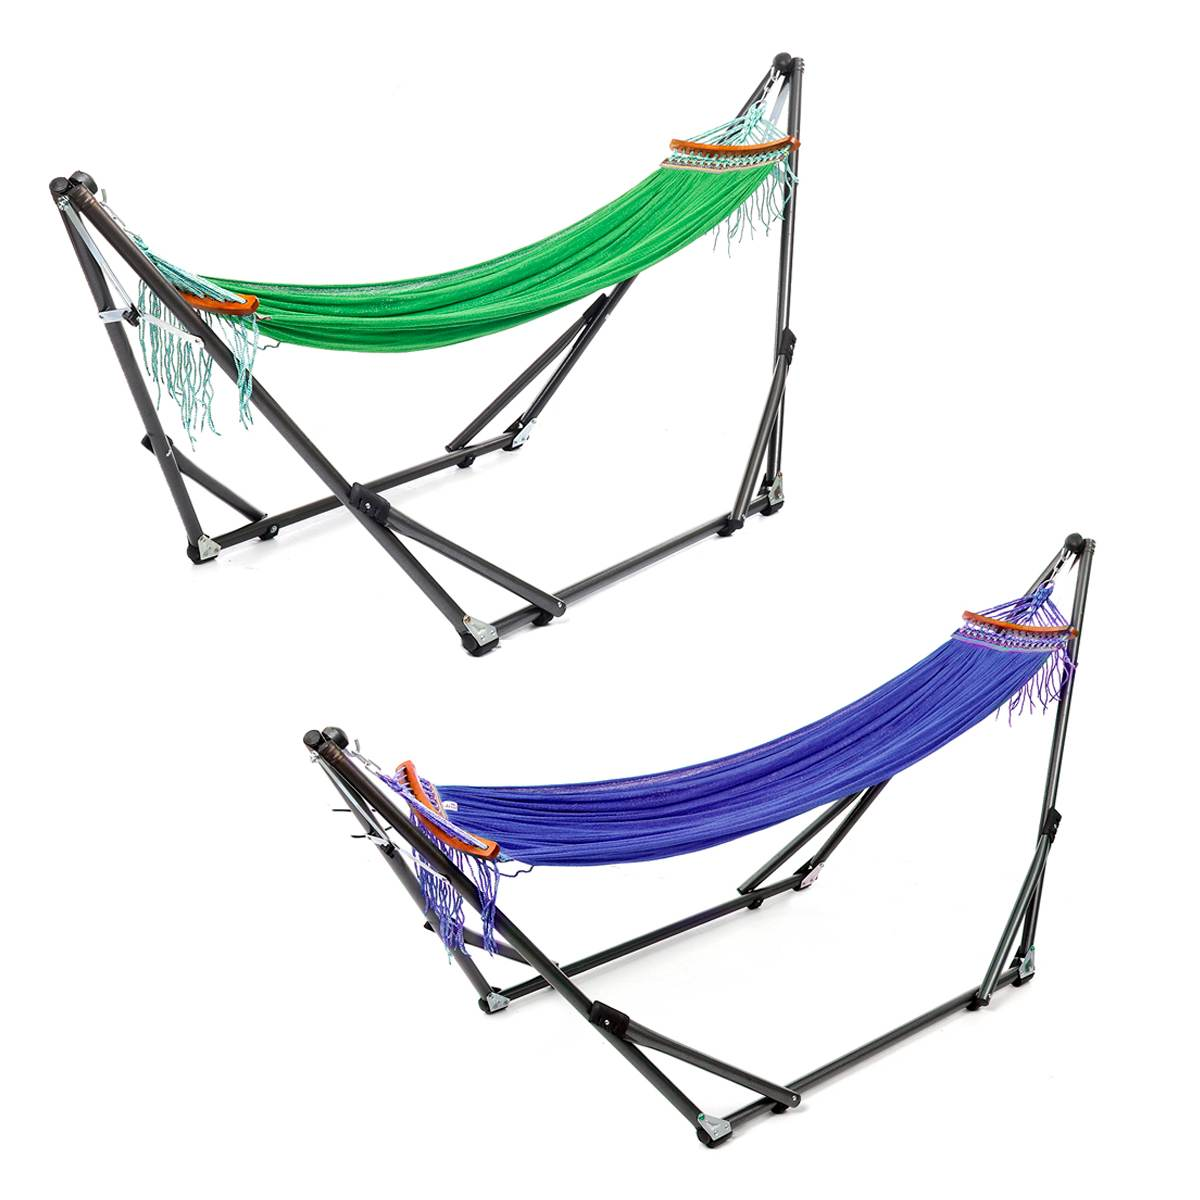 Folding Hammock Stand Bag Set 250KG Portable Steel Pipe Sleeping Swing Garden Outdoor Furniture Hunting Camping Accessories Kit - 4